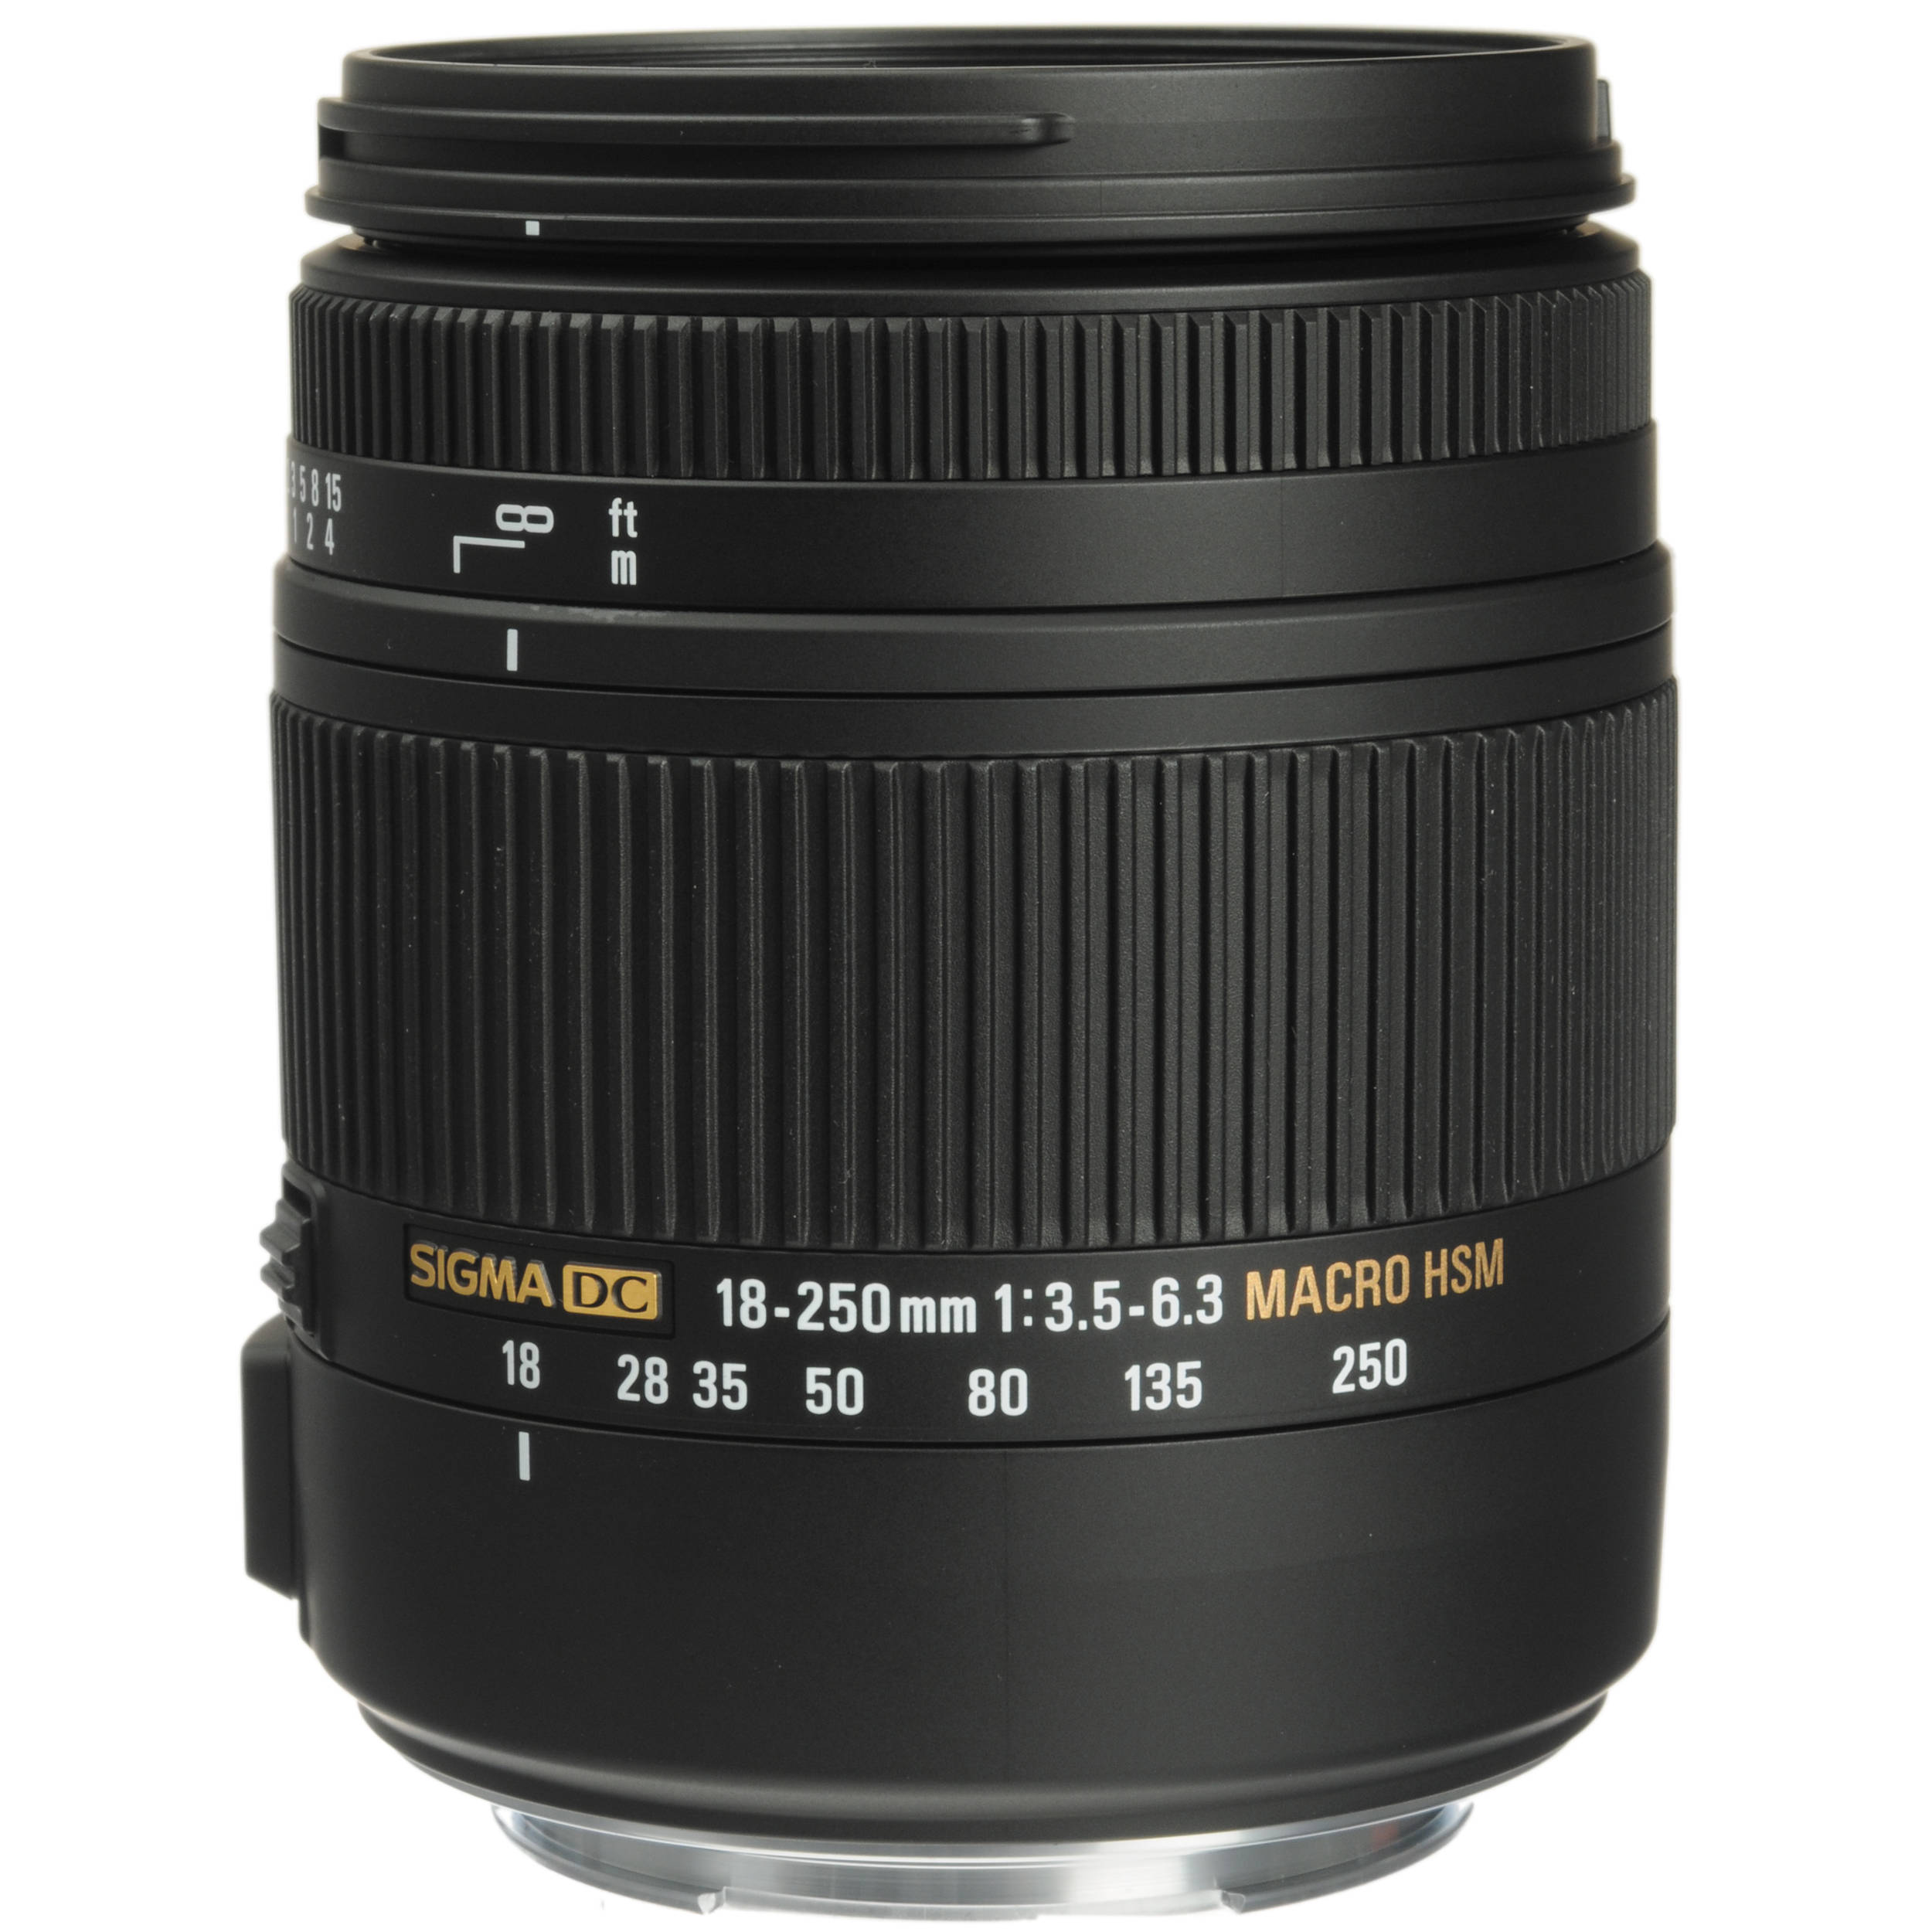 Sigma 18-250mm F3.5-6.3 DC Macro OS HSM for Canon EF 883-101 B&H